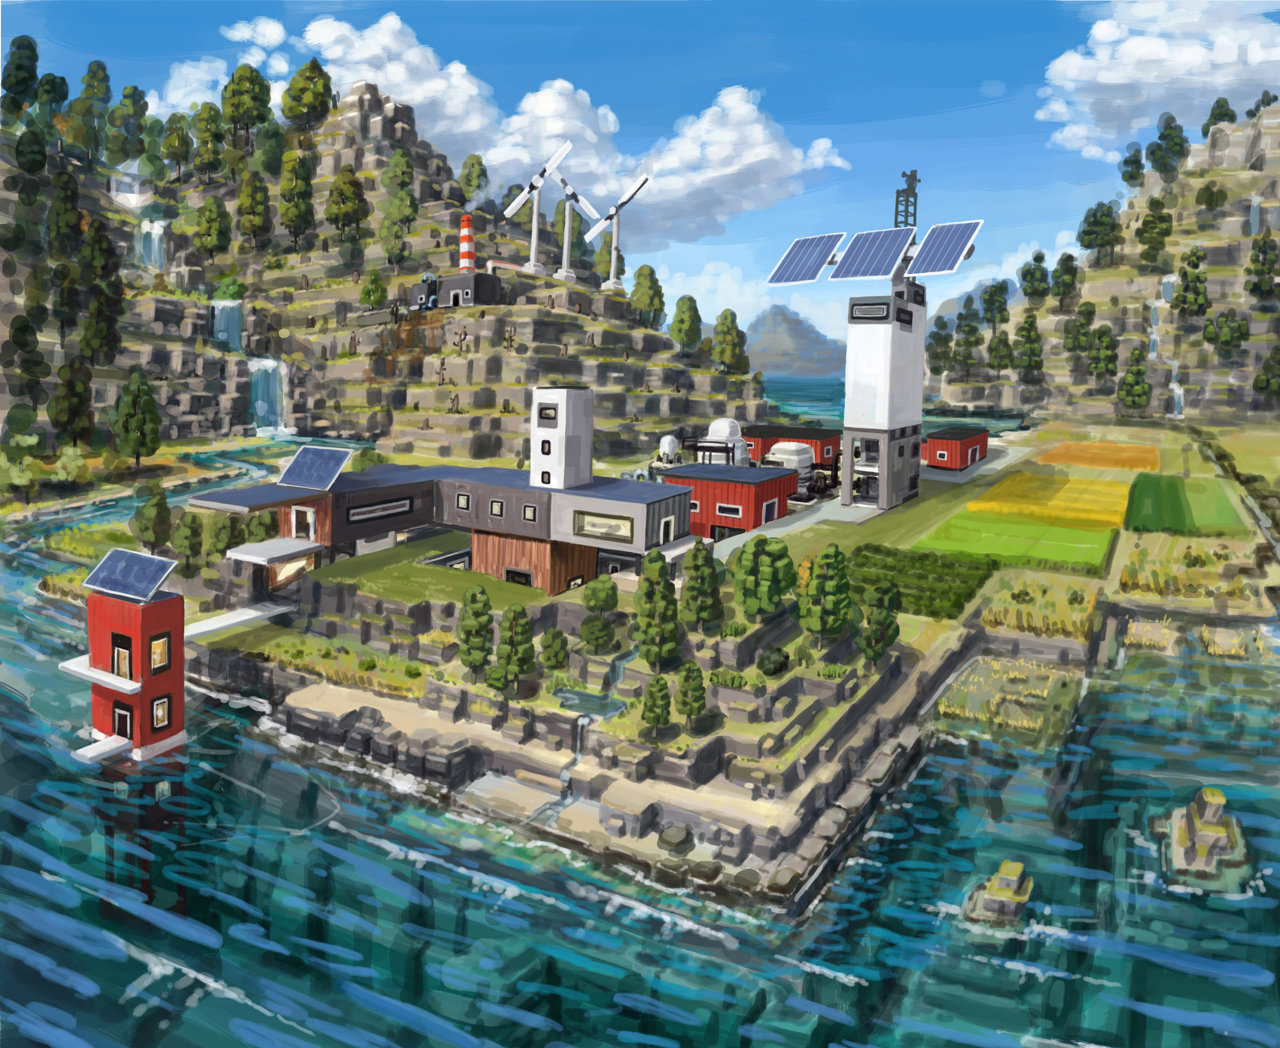 3061033-inline-s-2-these-games-show-how-we-can-tackle-climate-change-through-better-urban-planning